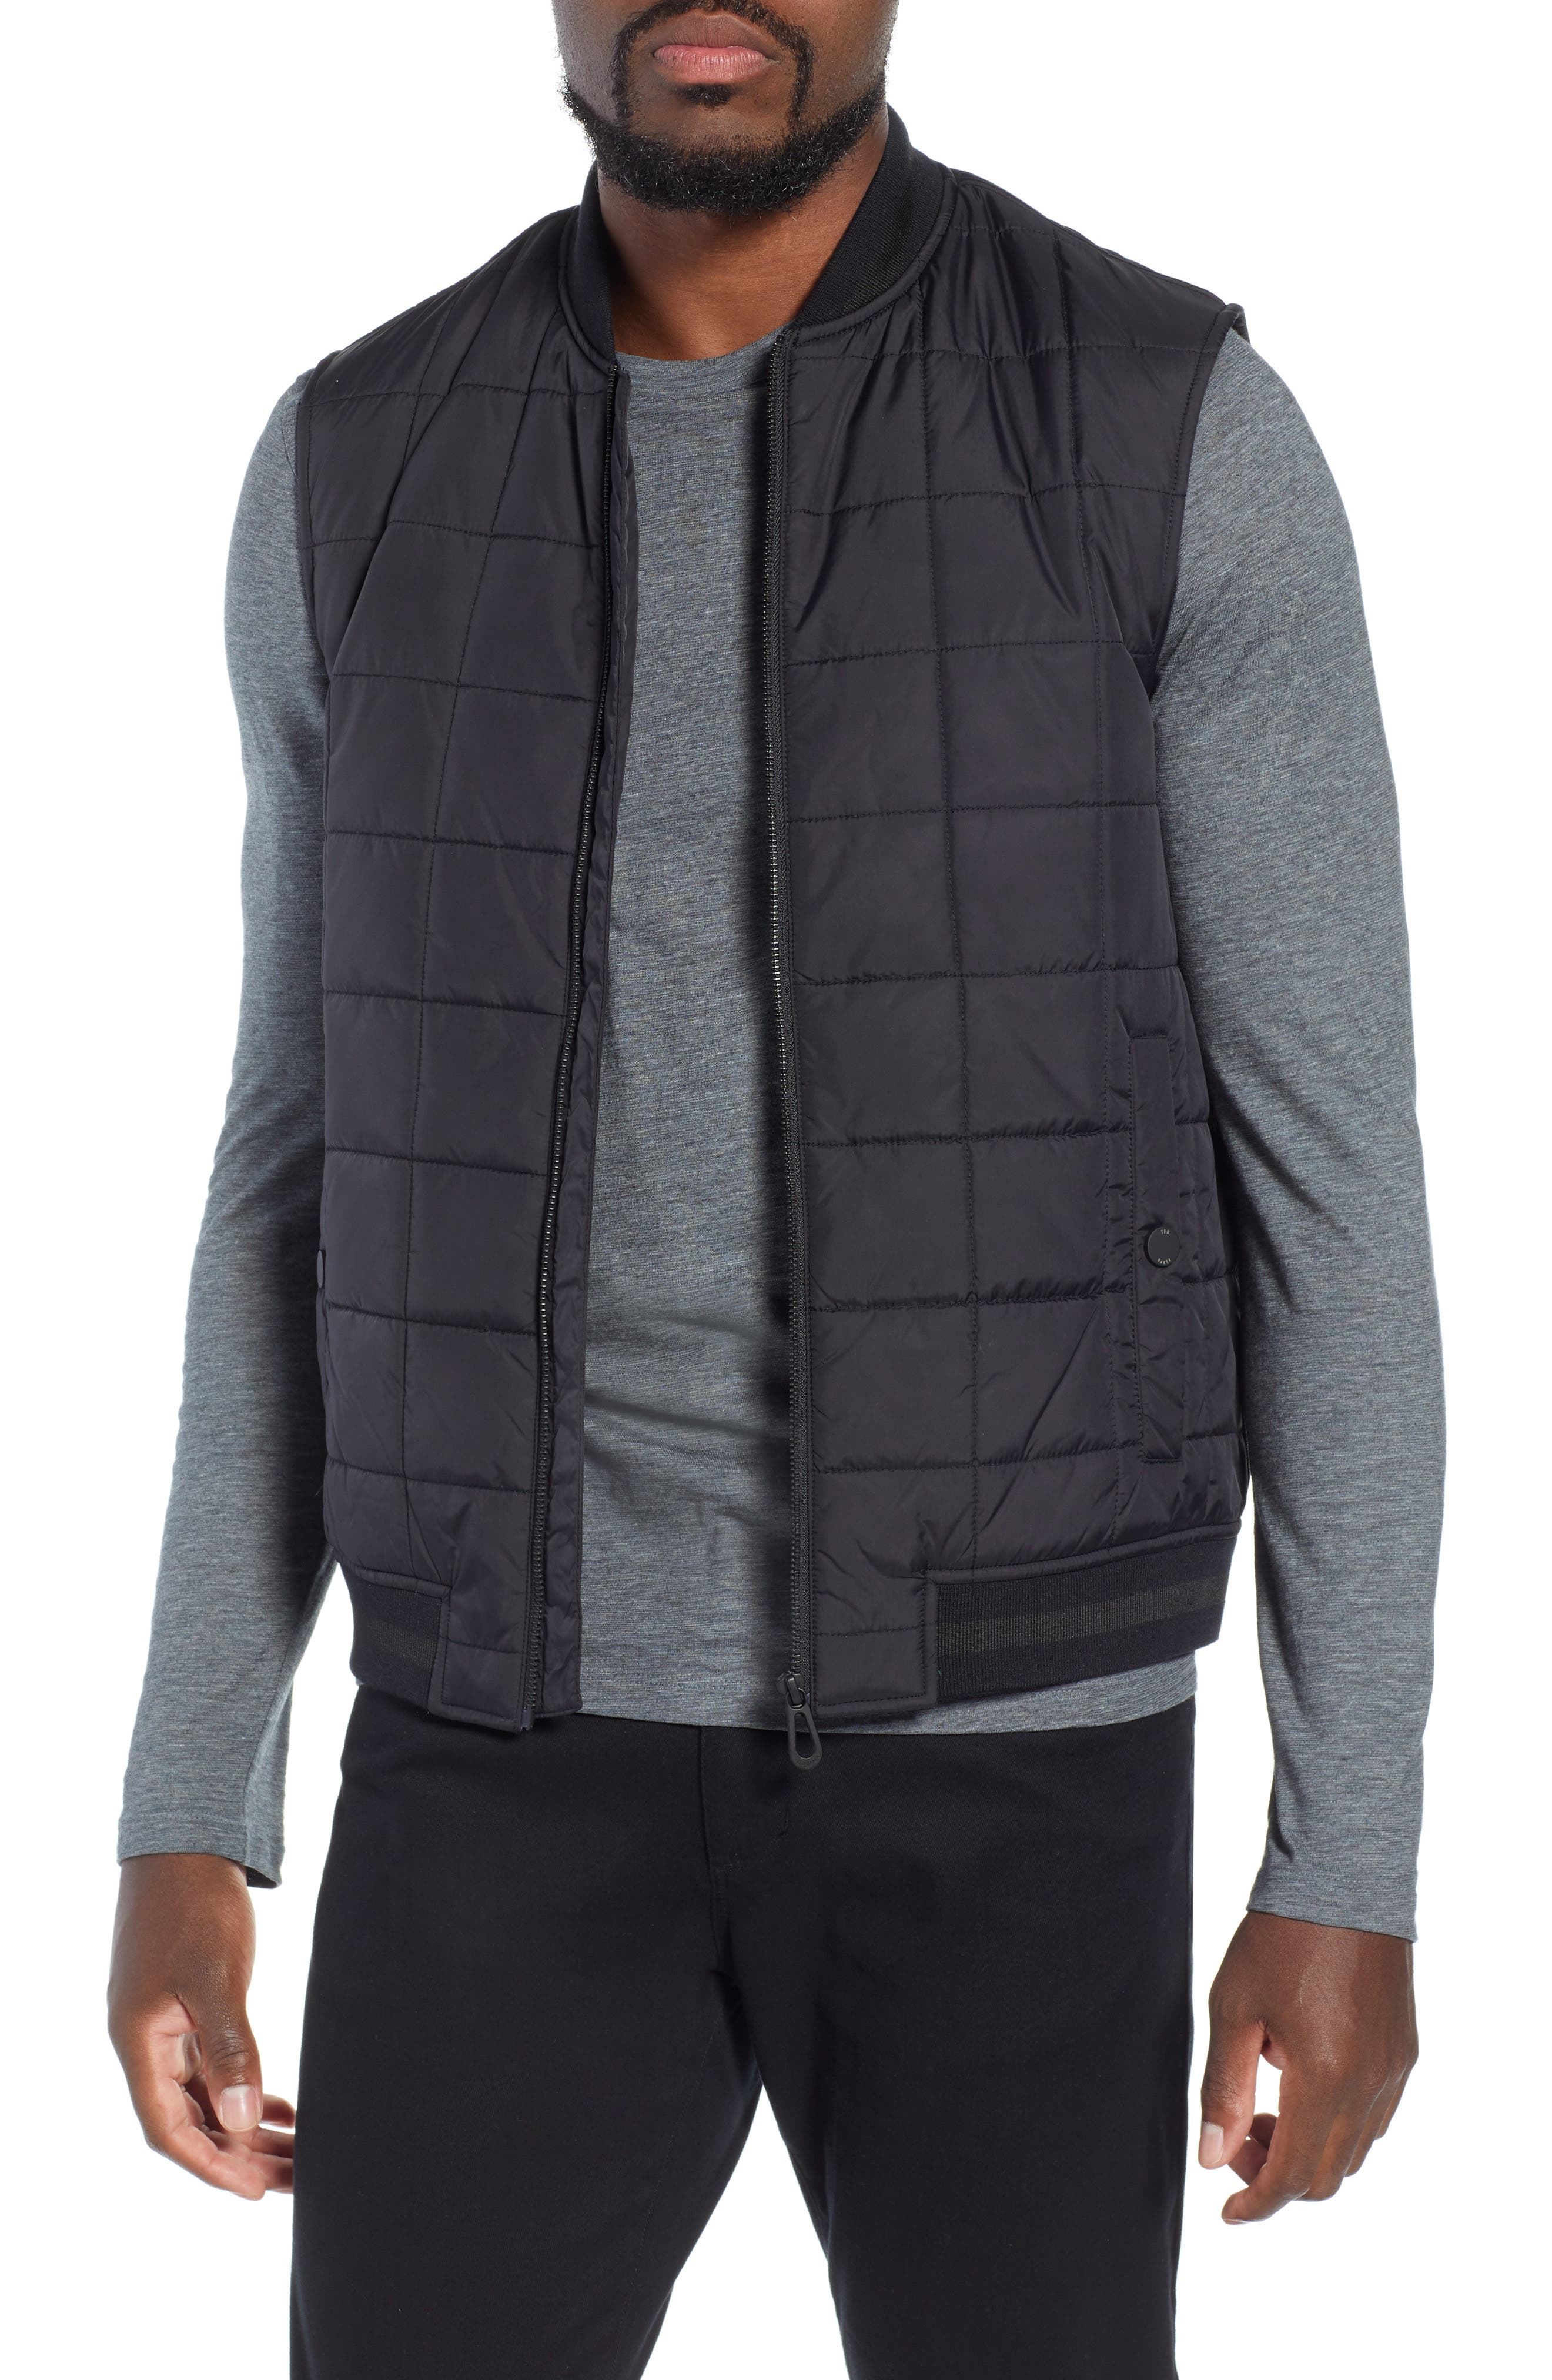 Oakcake Slim Quilted Gilet,                             Main thumbnail 1, color,                             BLACK